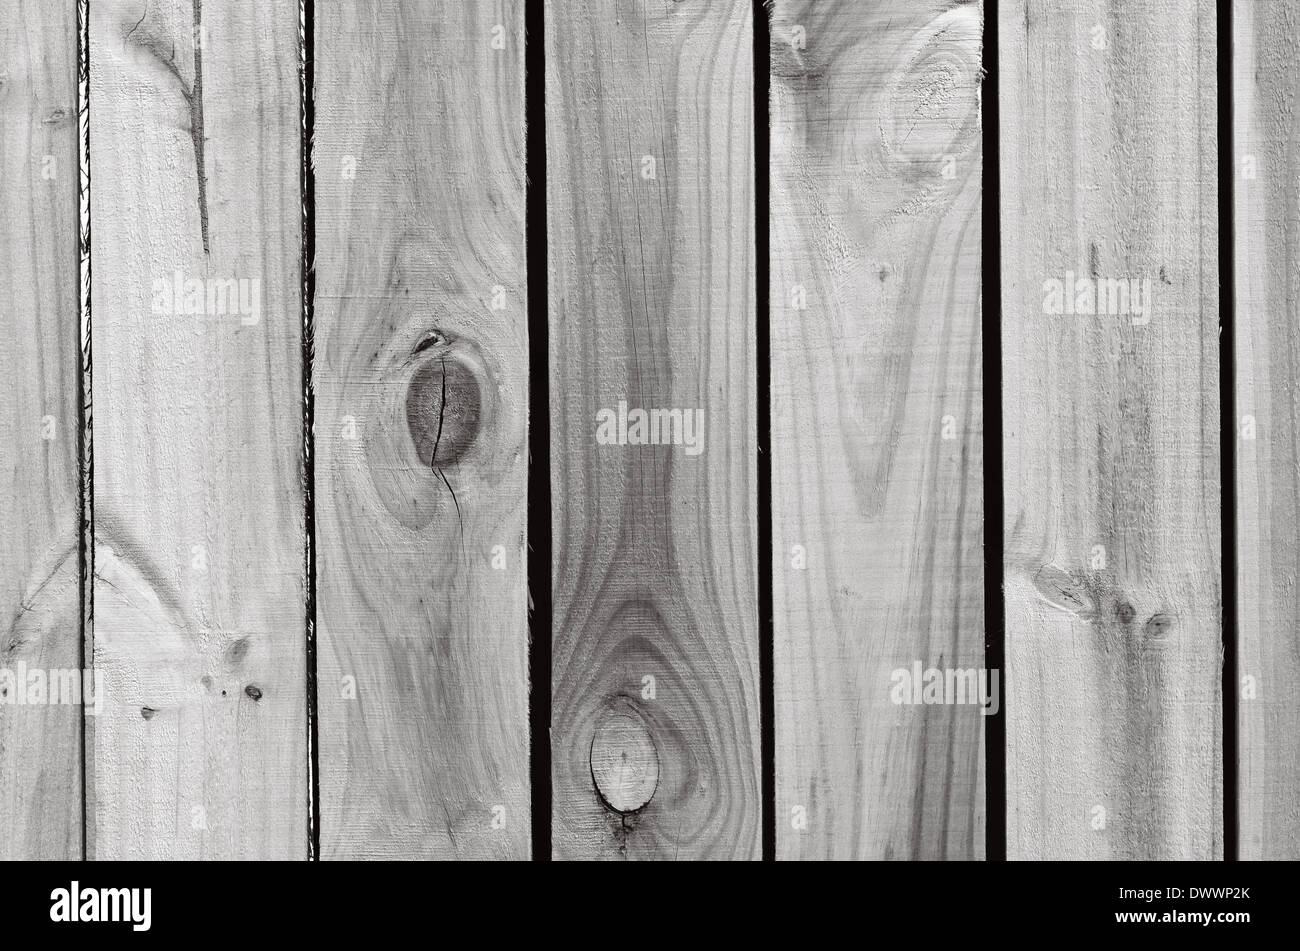 Line of empty wood planks background texture. (BW) - Stock Image